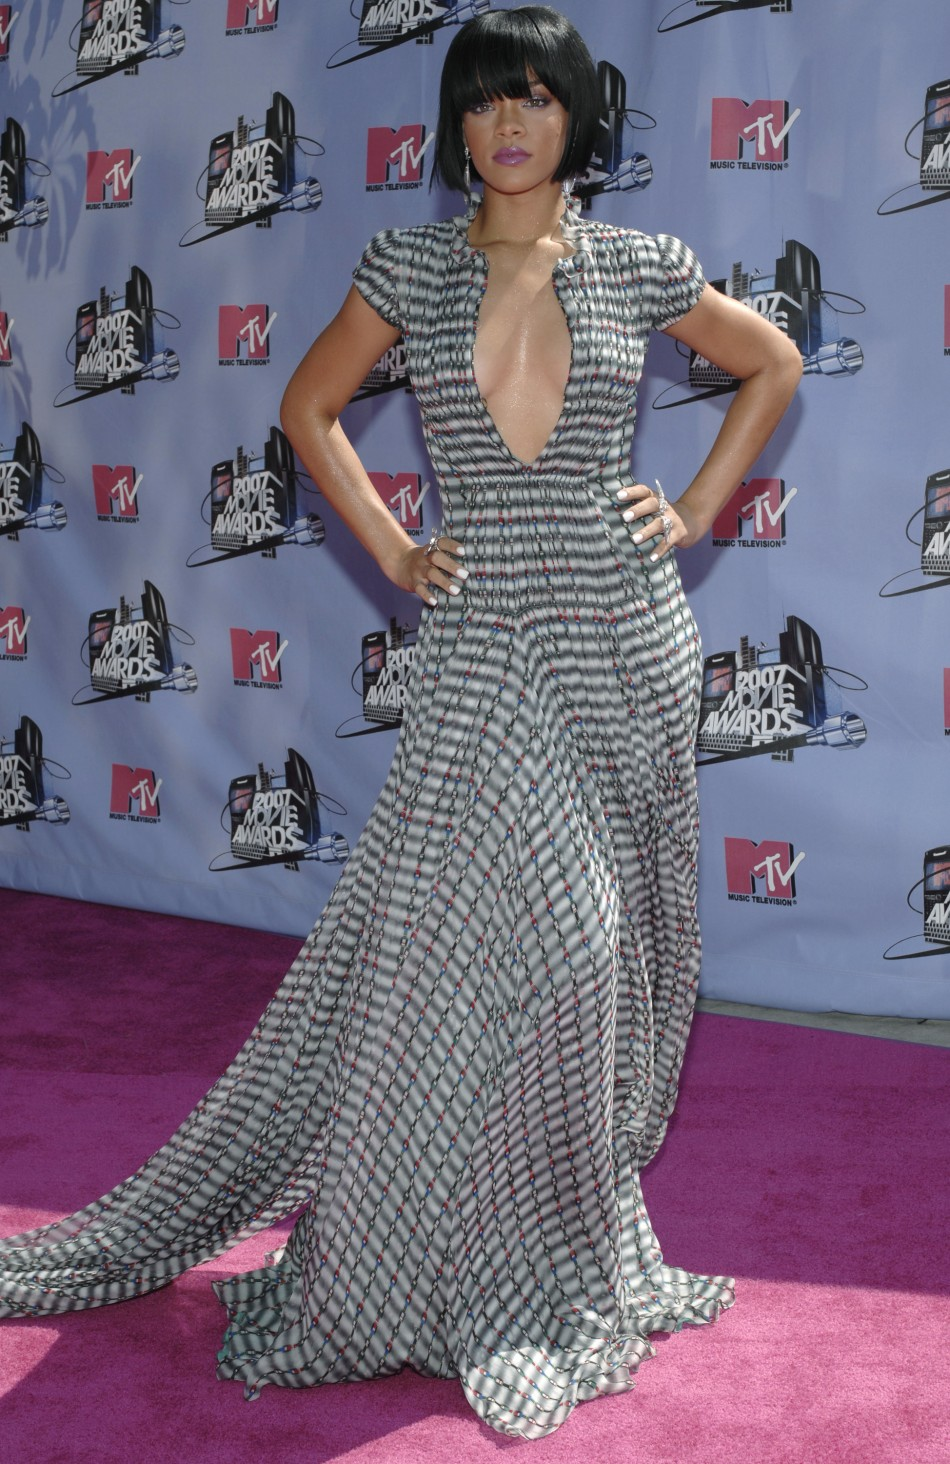 Singer Rihanna attends the 2007 MTV Movie Awards in Los Angeles, California June 3, 2007.